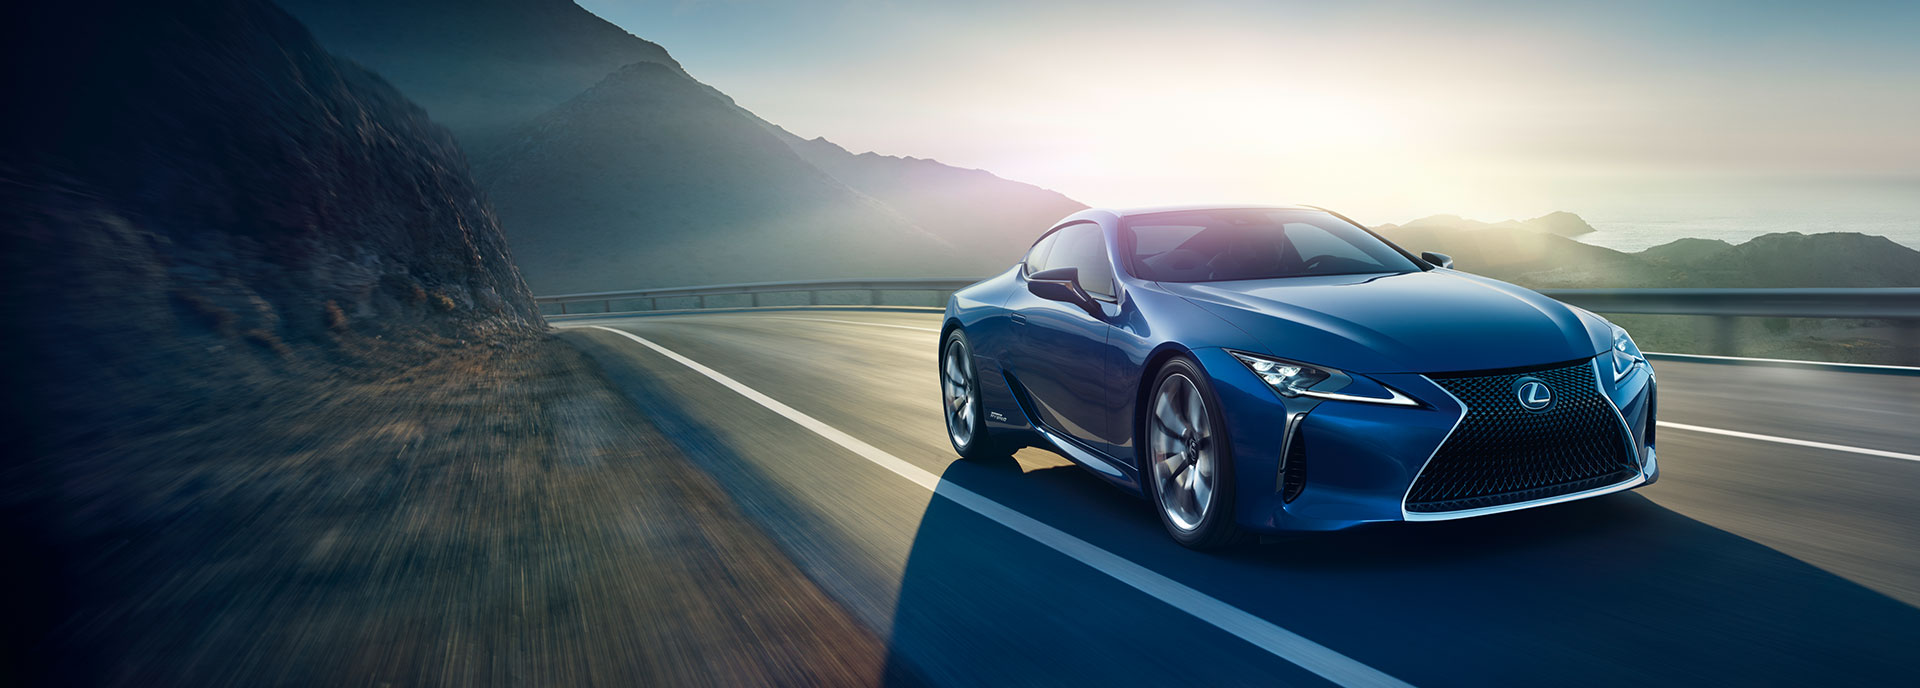 2017 lexus lc blue hero